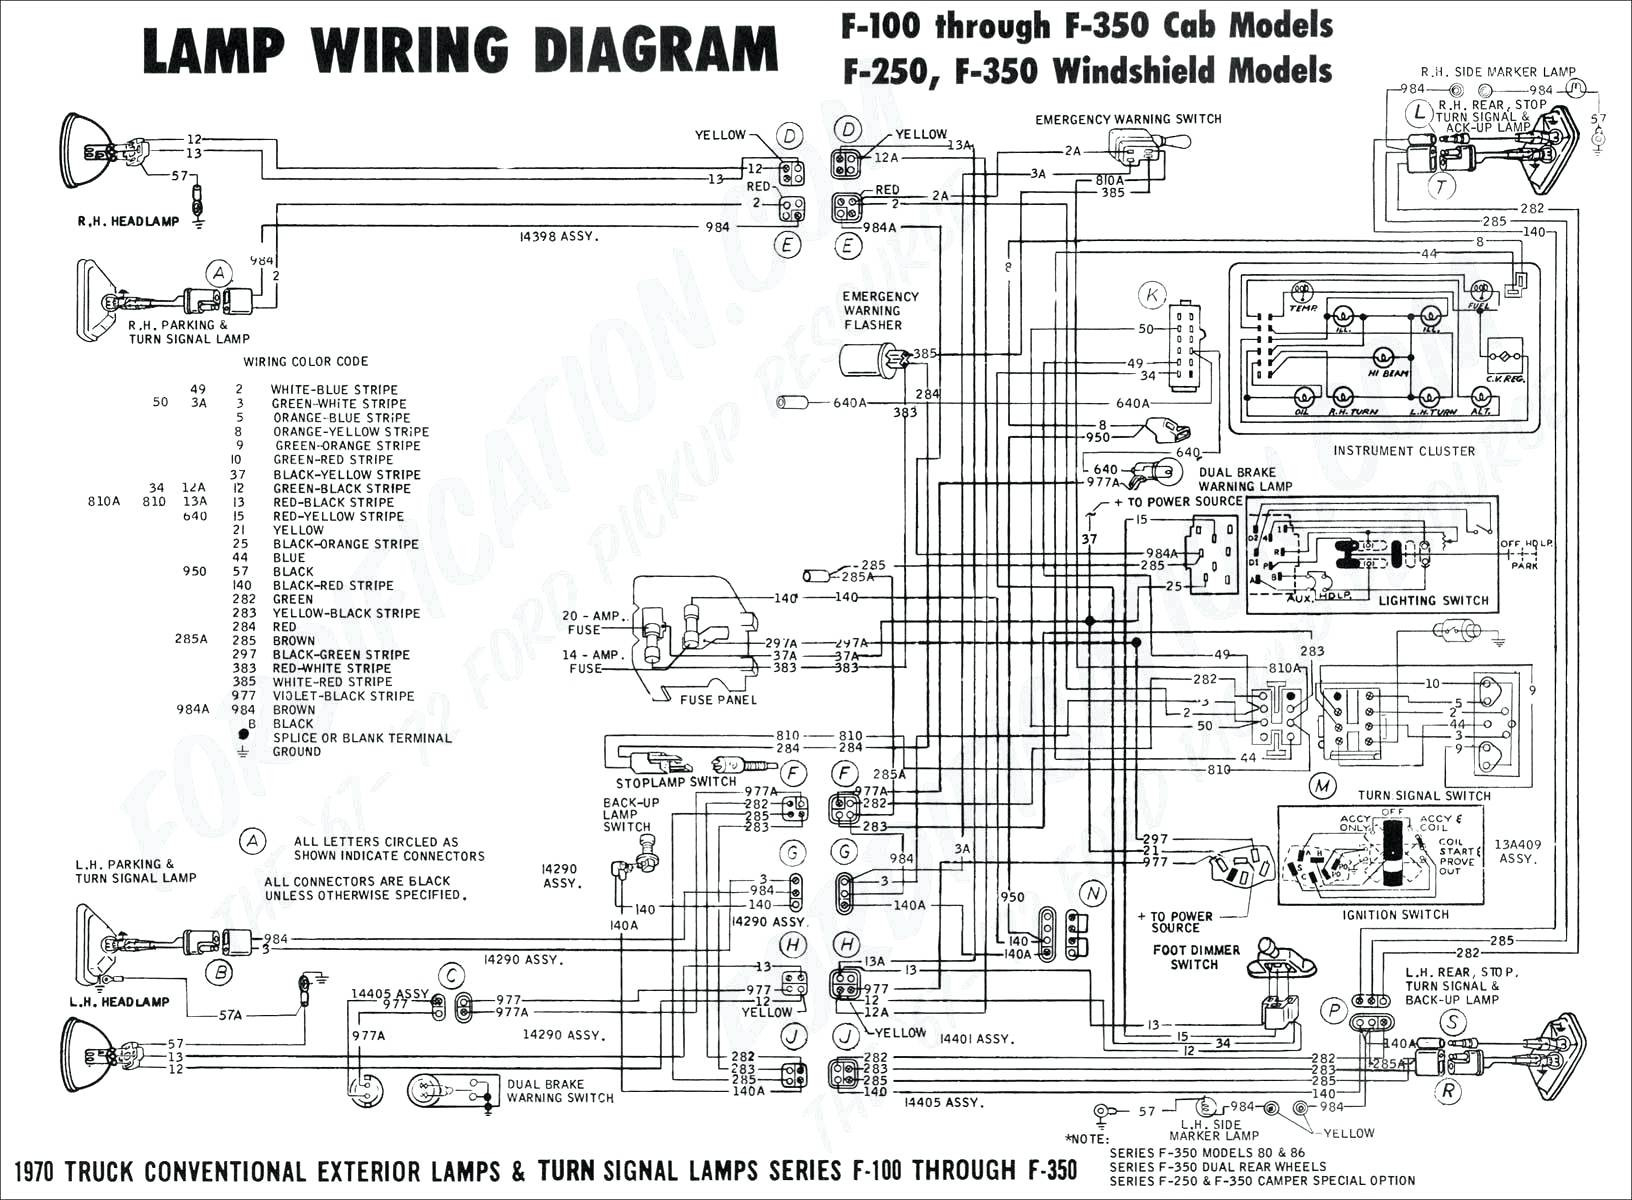 ford f250 wiring diagram Collection-Ford F350 Trailer Wiring Diagram Trailer Wiring Diagram ford Ranger Inspirationa 2000 ford F250 Trailer 4-i